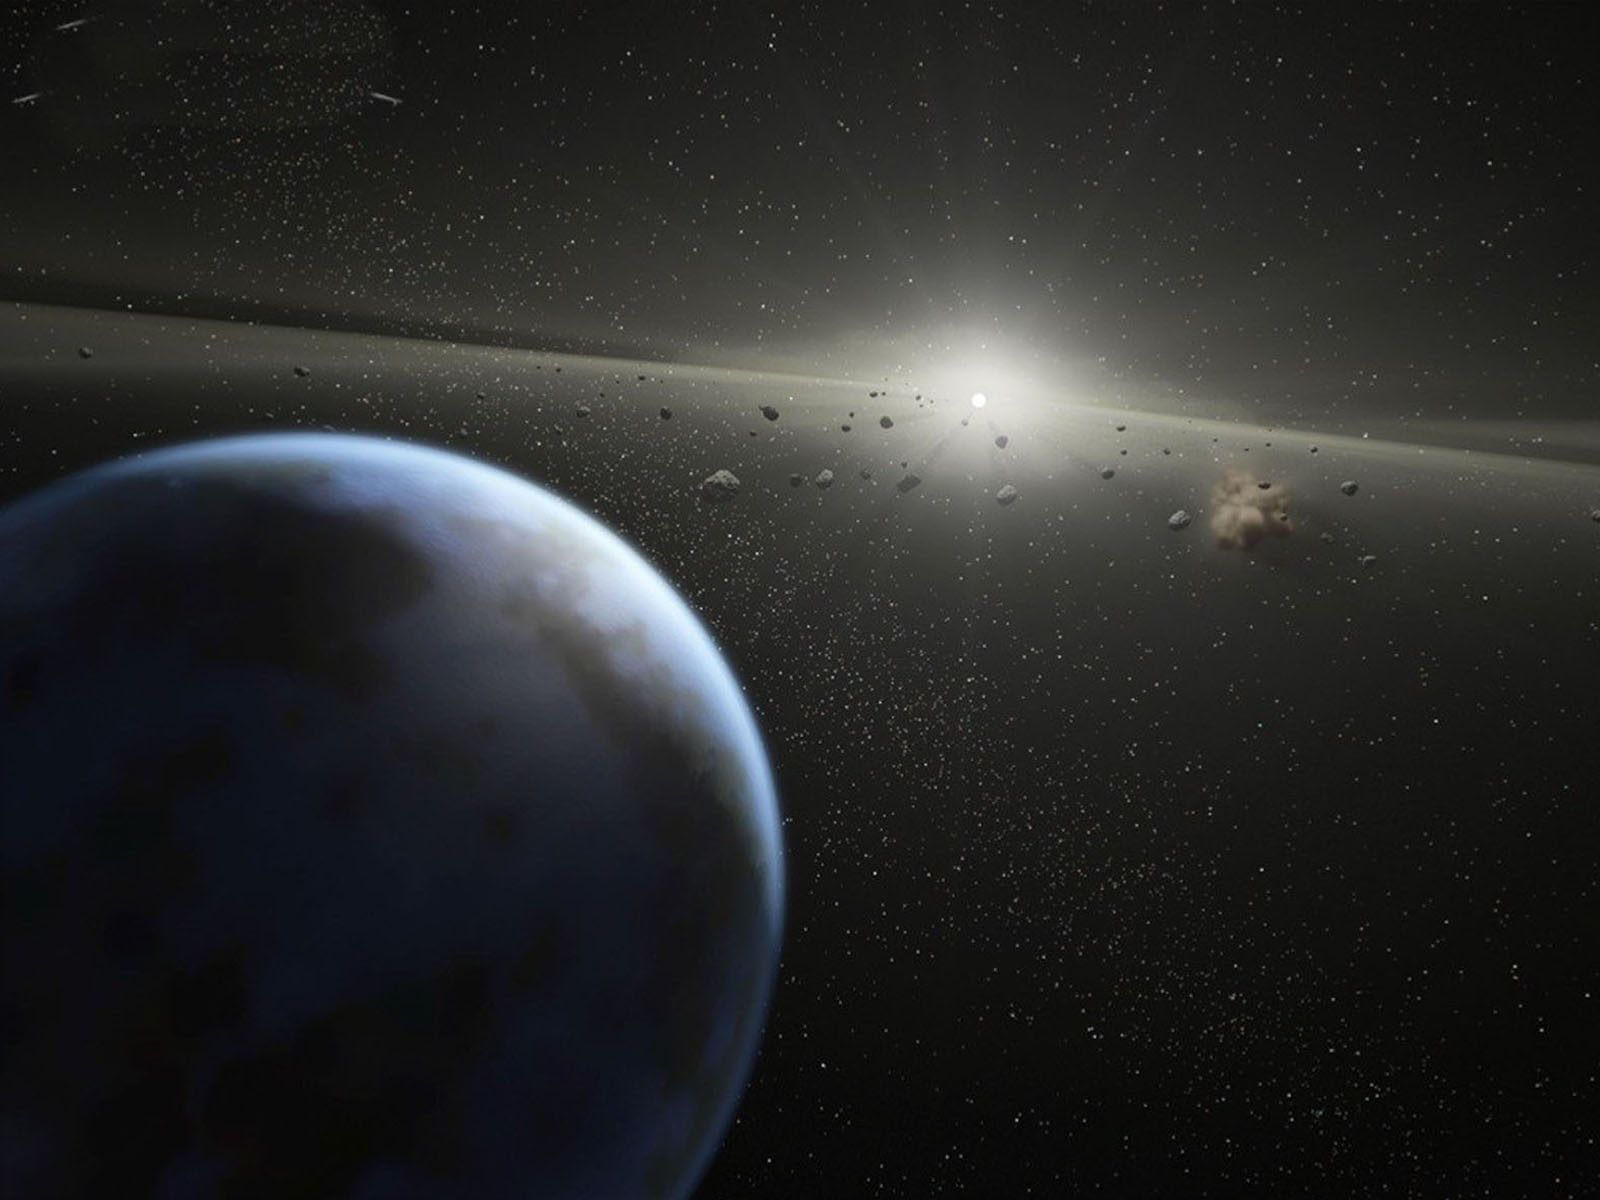 3d Moving Wallpapers City Lights Wallpapers Asteroid Belt In Orbit